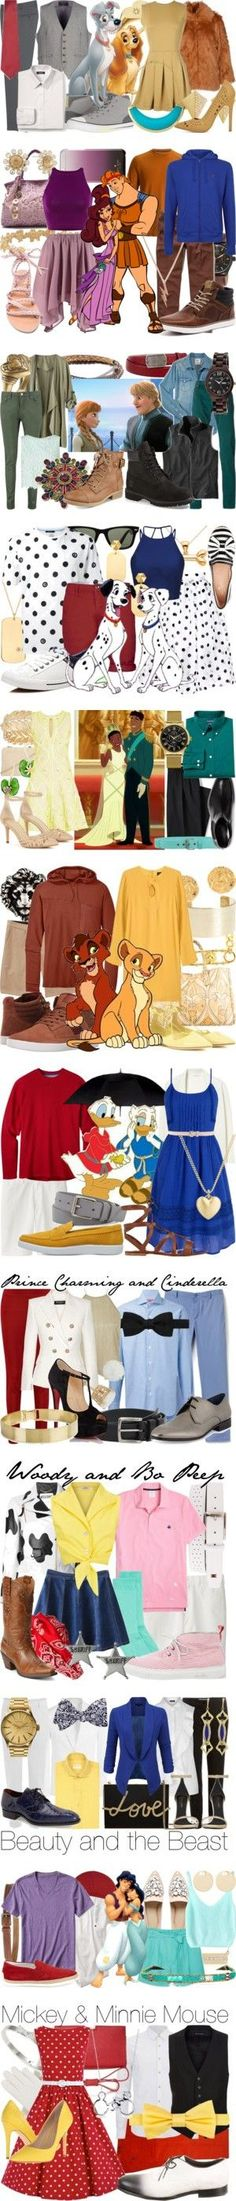 Couple's Fashion by fabulousgurl on Polyvore featuring MANGO MAN, Cheap Monday, Pence, TheP., Lands' End, Gieves & Hawkes, Ileana Makri, Converse, Kenneth Jay Lane and disneybound